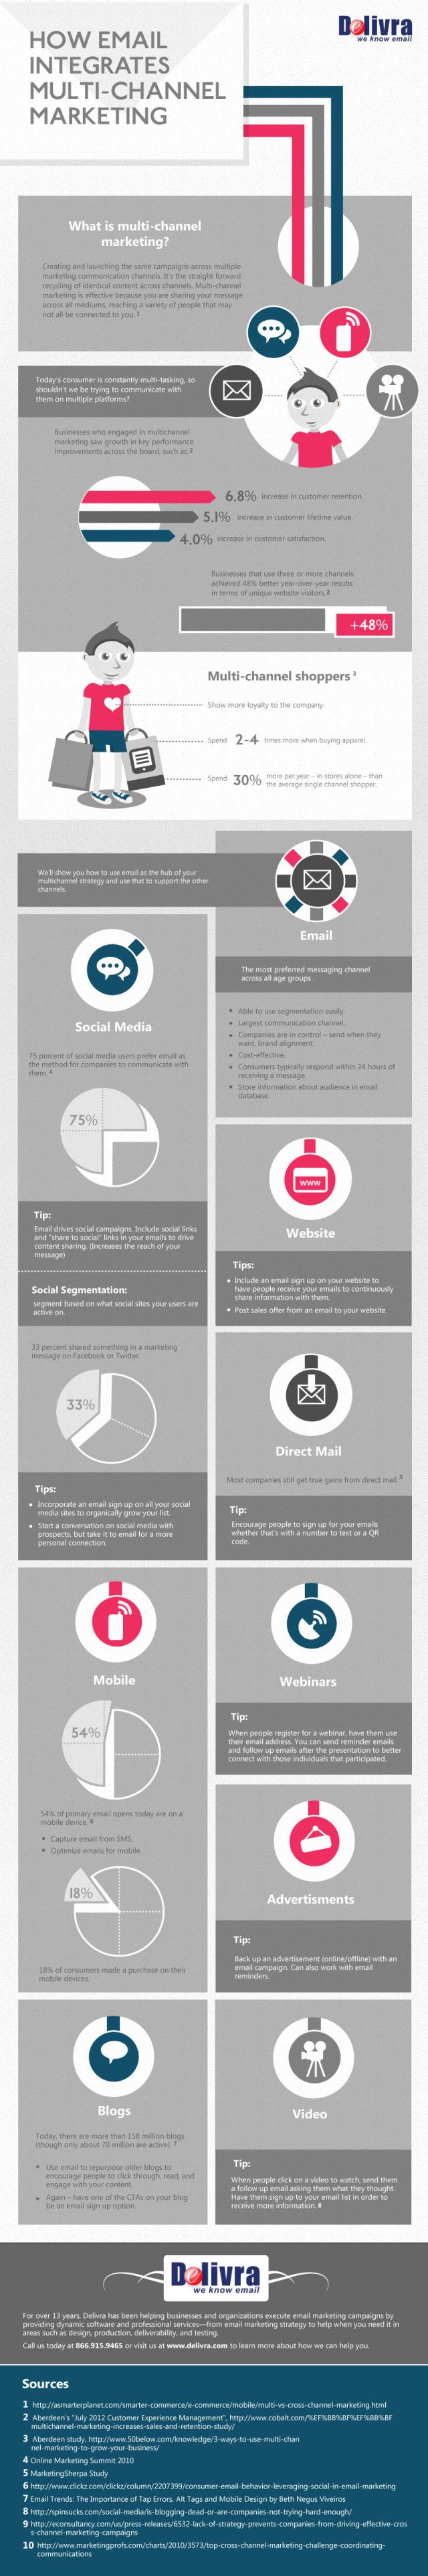 How Email Integrates Multi-Channel Marketing #Infographic